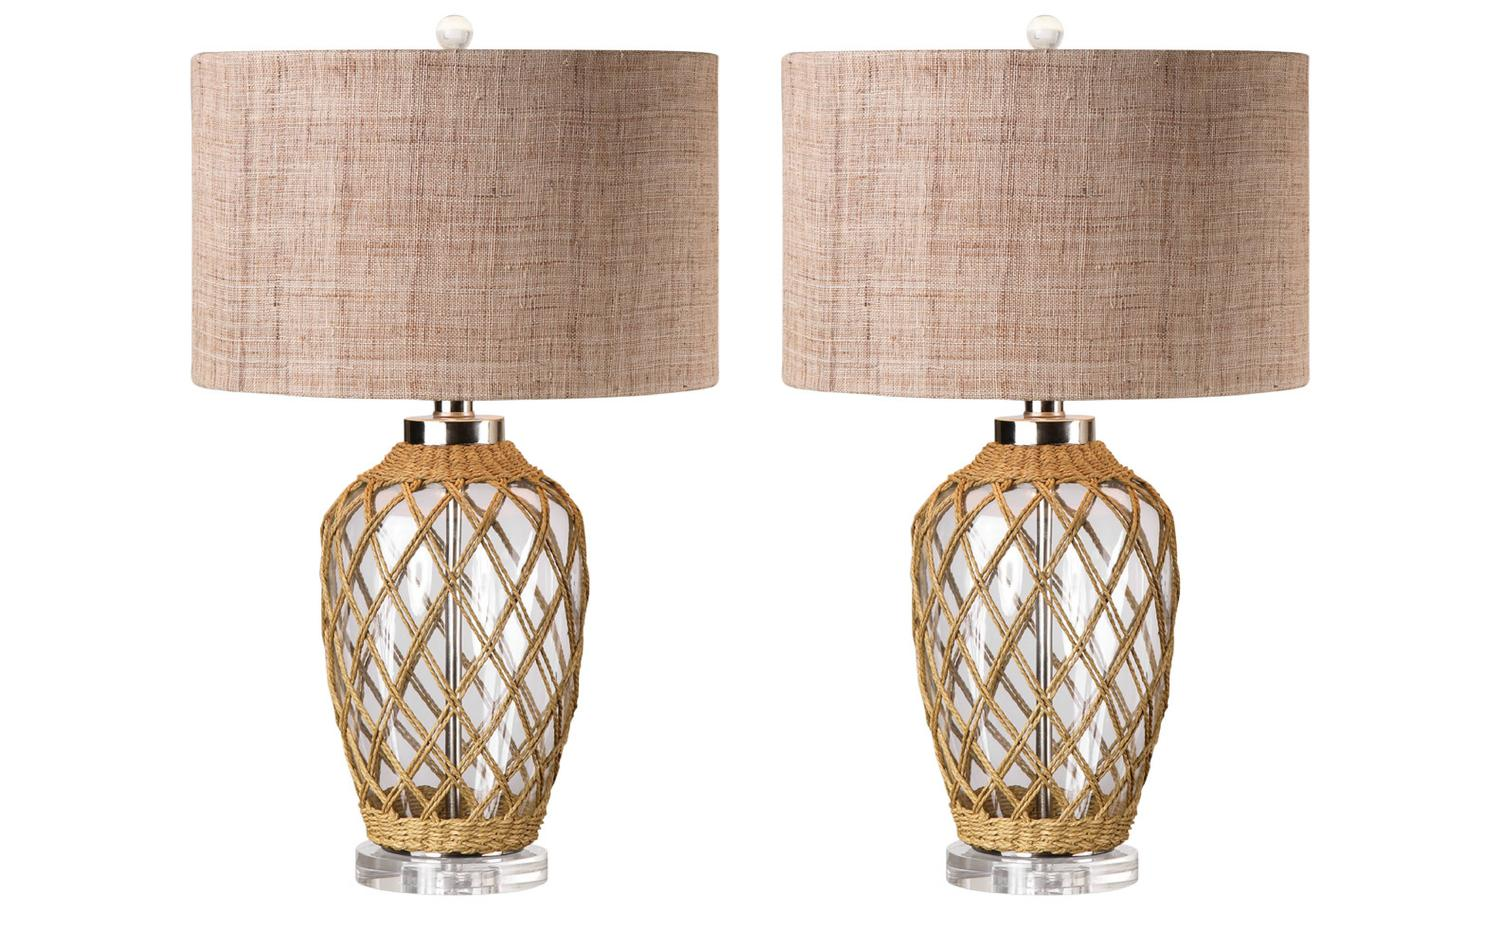 wrapped glass lamps nautical beach house lamps for sale at 1stdibs. Black Bedroom Furniture Sets. Home Design Ideas